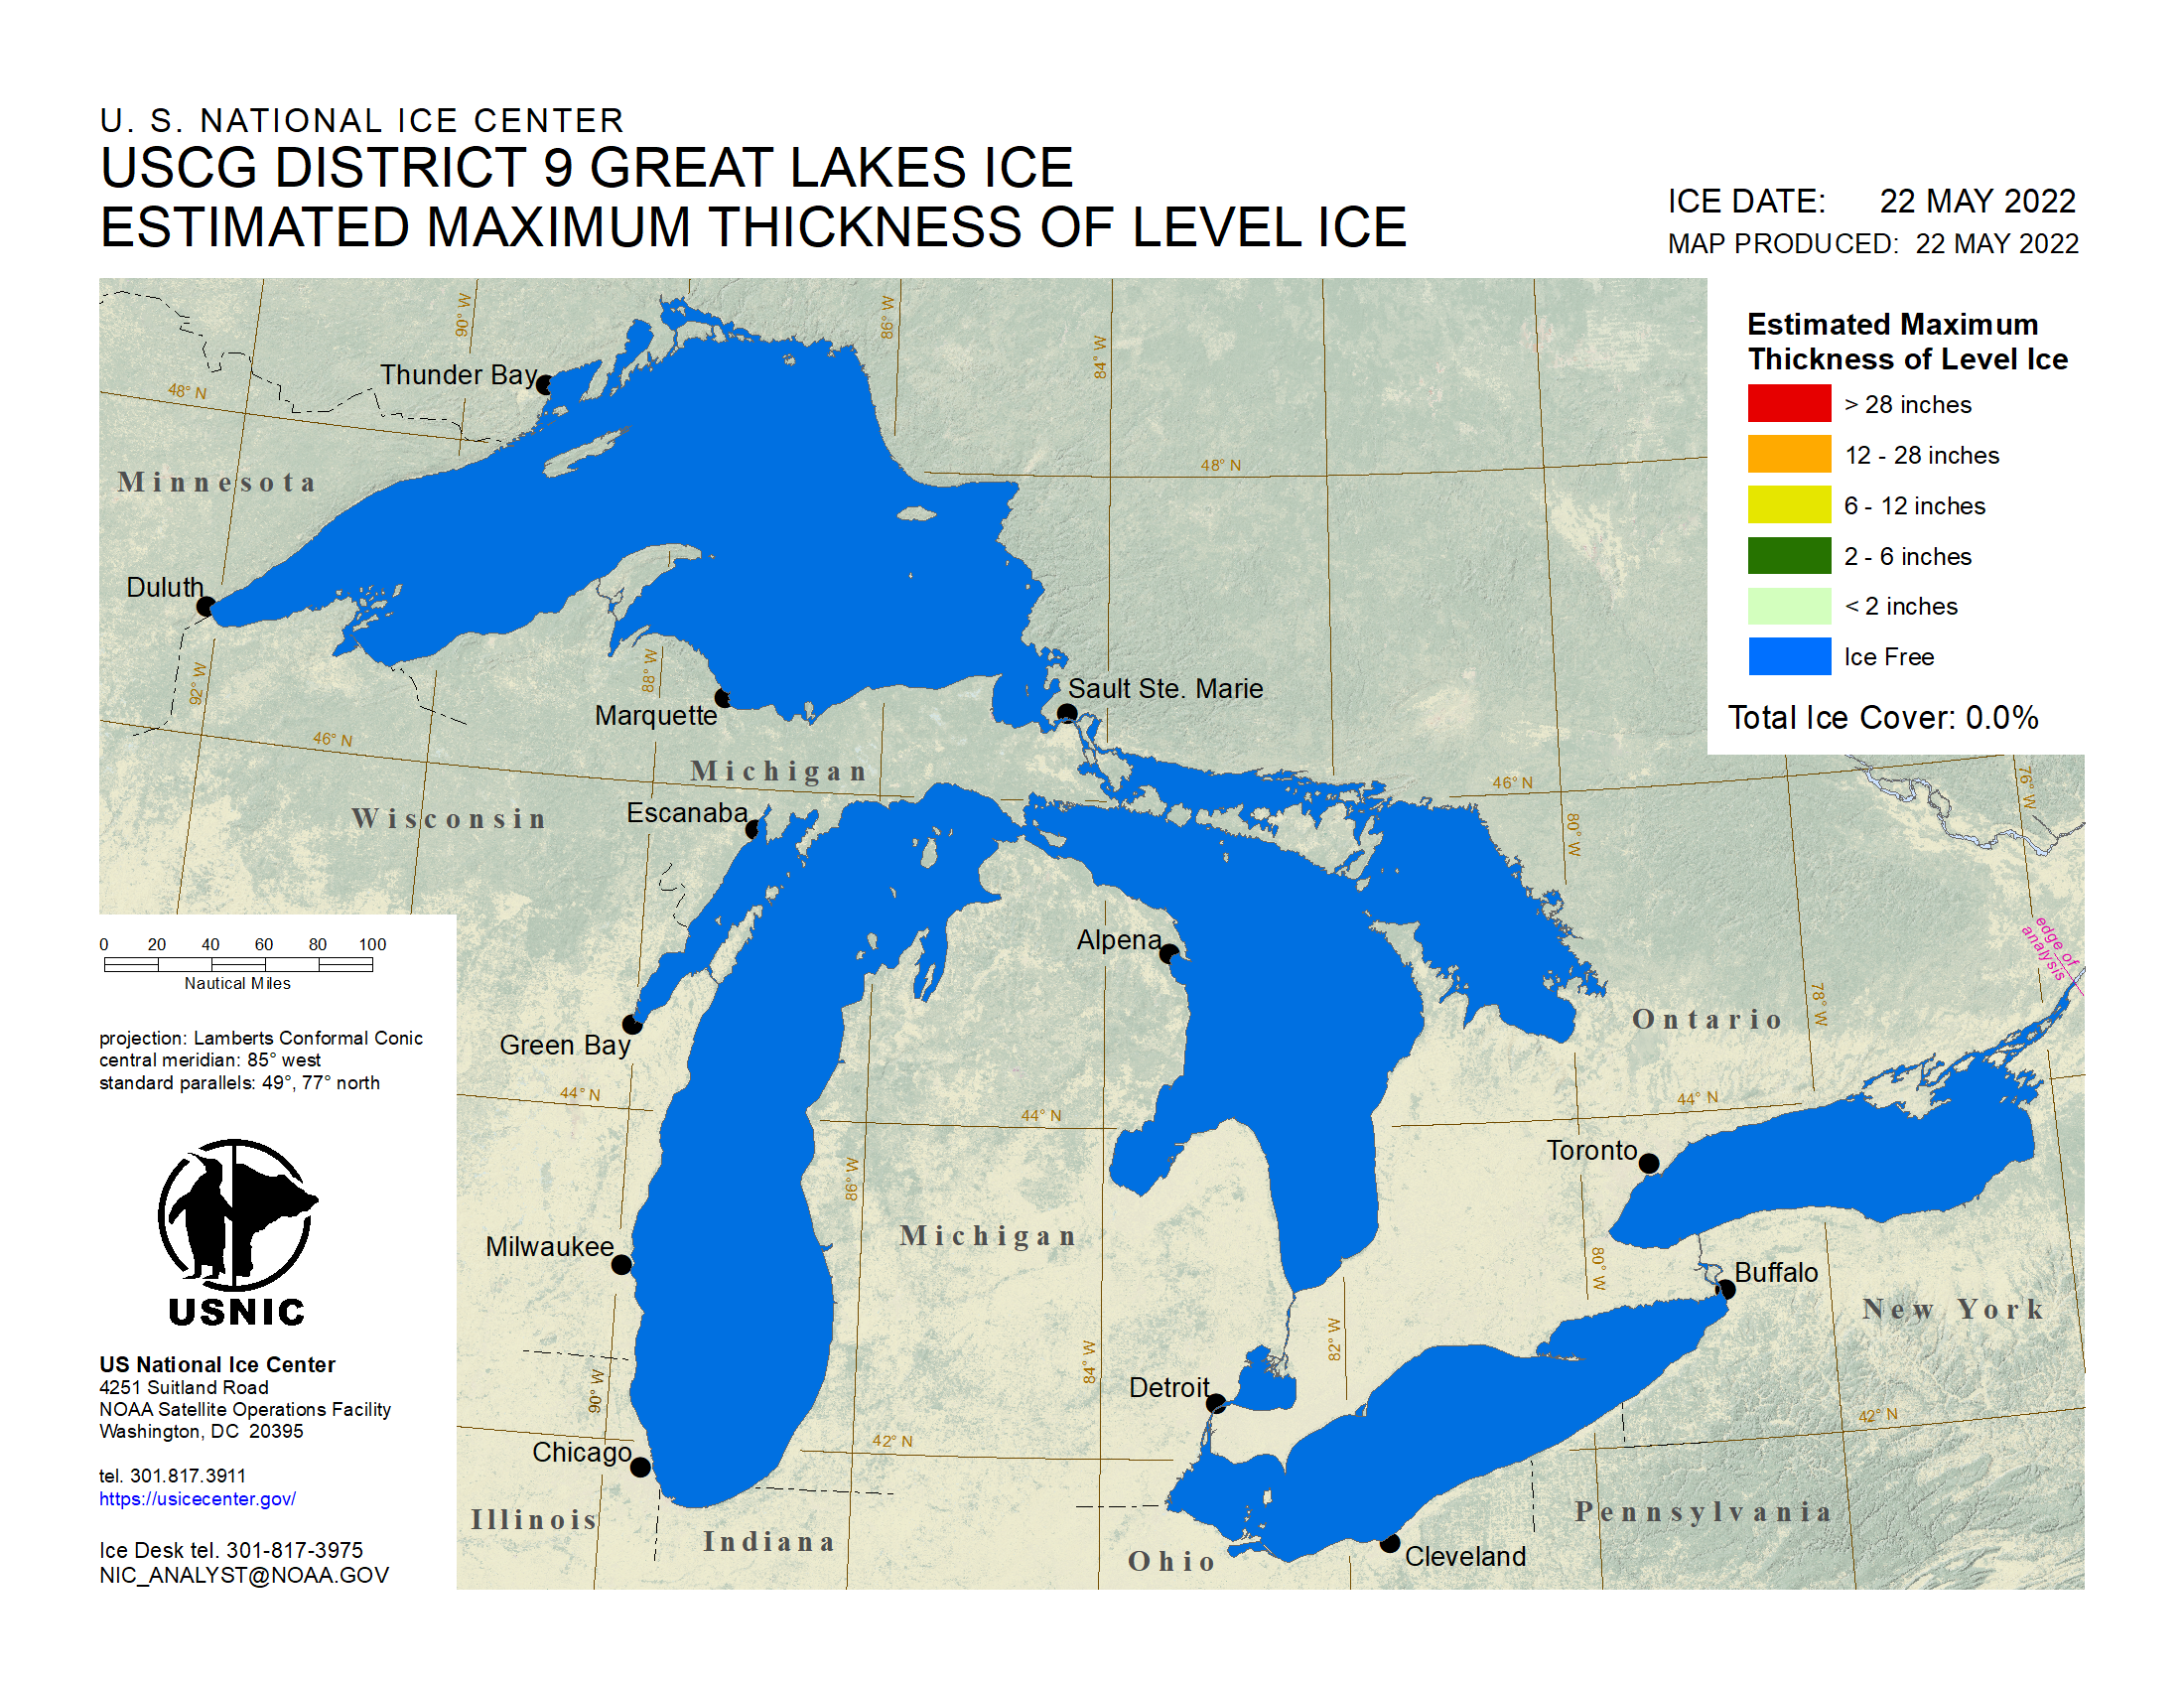 Great Lakes Estimated Ice Thickness in Inches